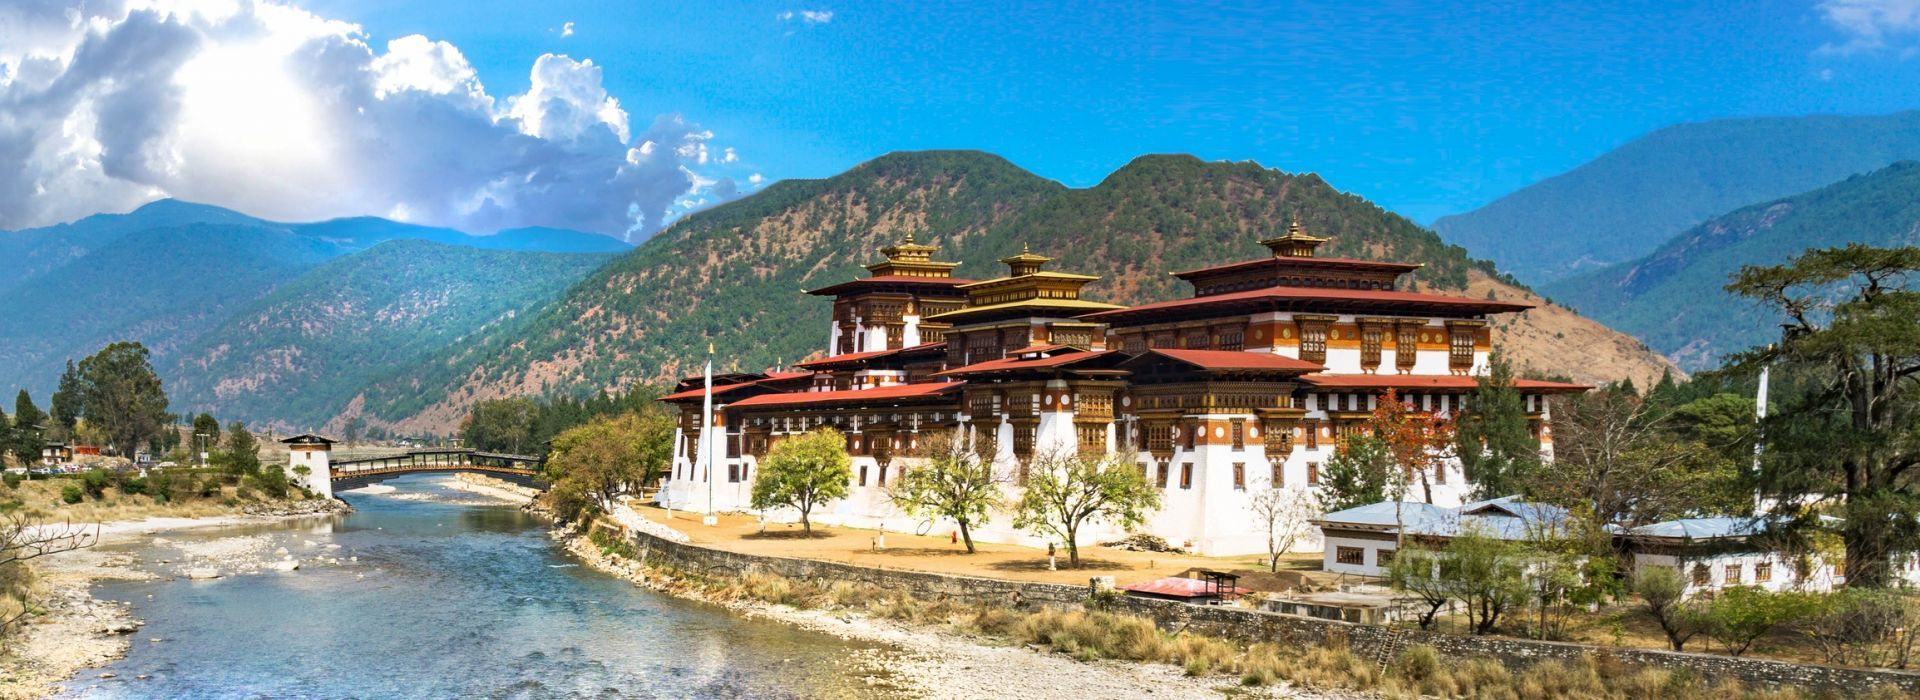 Museum and gallery visits Tours in Tiger's Nest Monastery